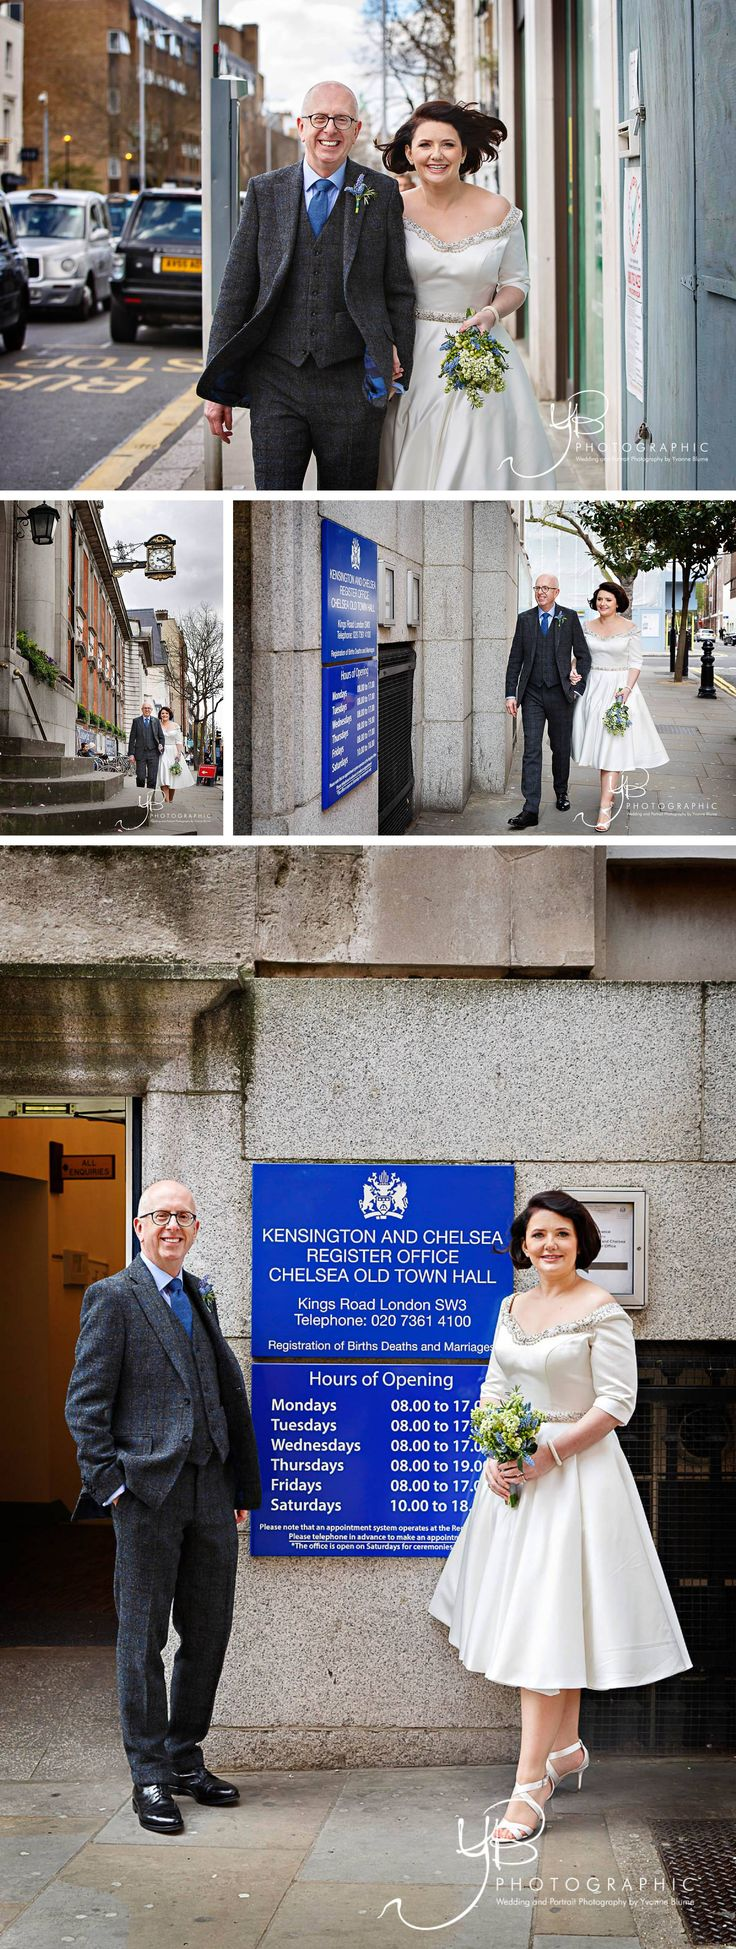 2017 06 registry office wedding vows examples - Spring Time Wedding Photography By Ybphotographic Featuring A Joyous Brydon Room Wedding Ceremony At Chelsea Register Office